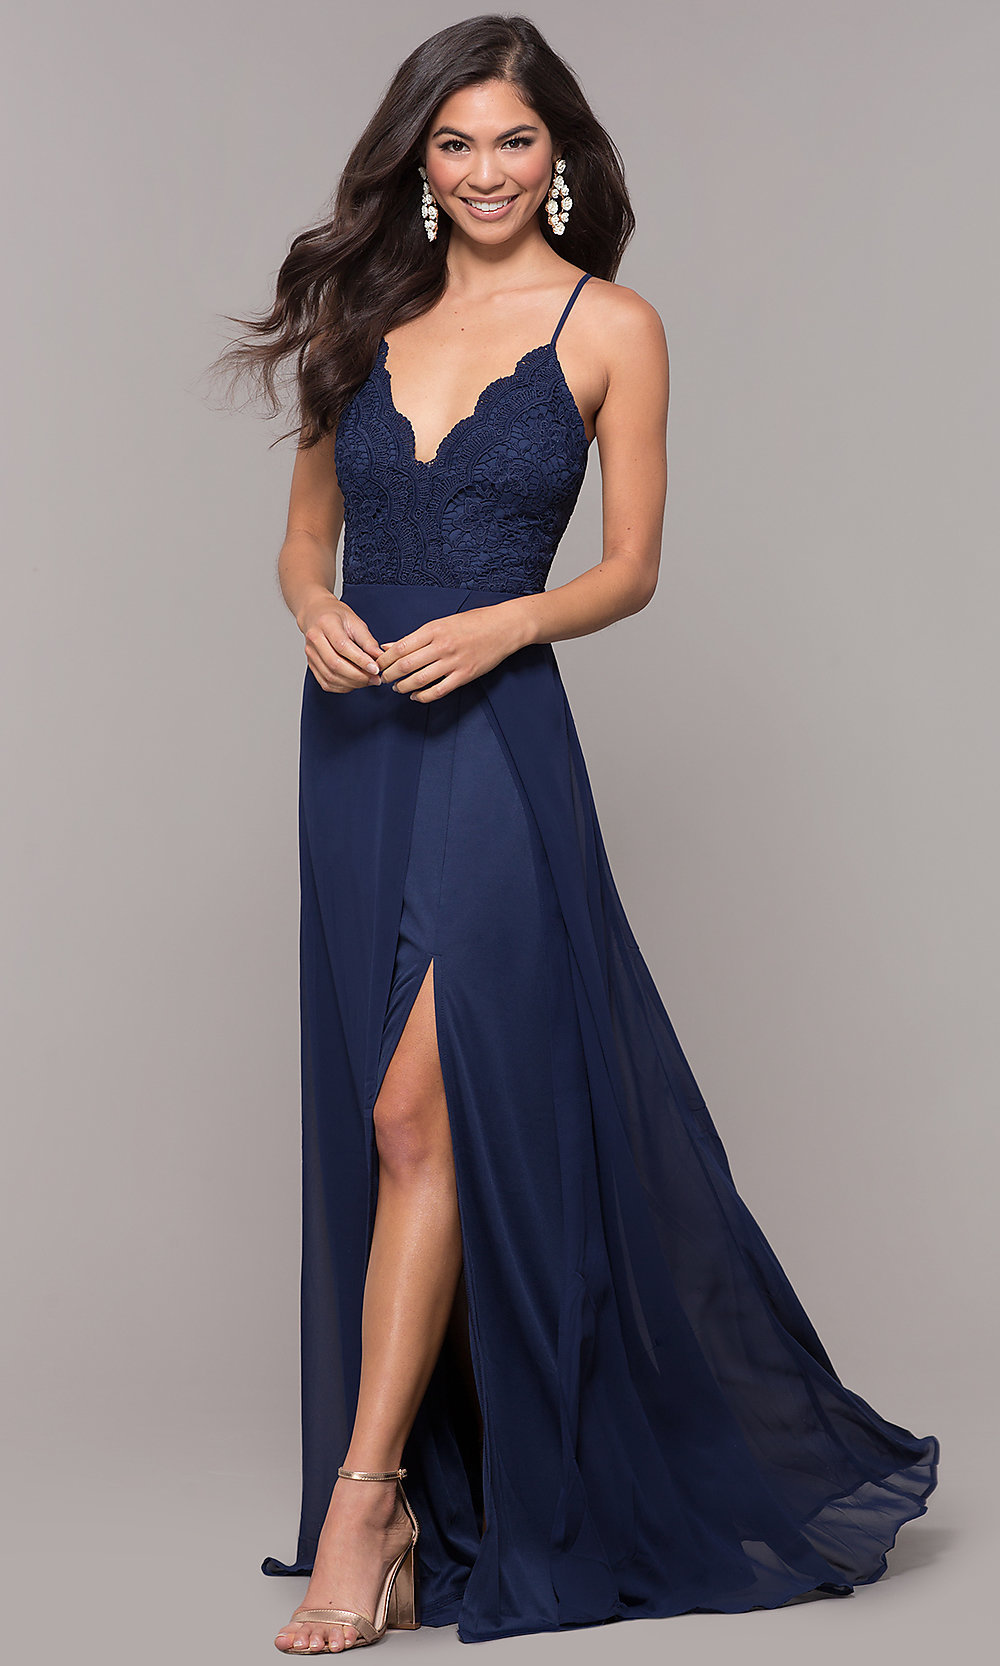 dress prom navy dresses neck low lace formal bodice bridesmaid promgirl homecoming gowns faux wrap front cut lp occasion special